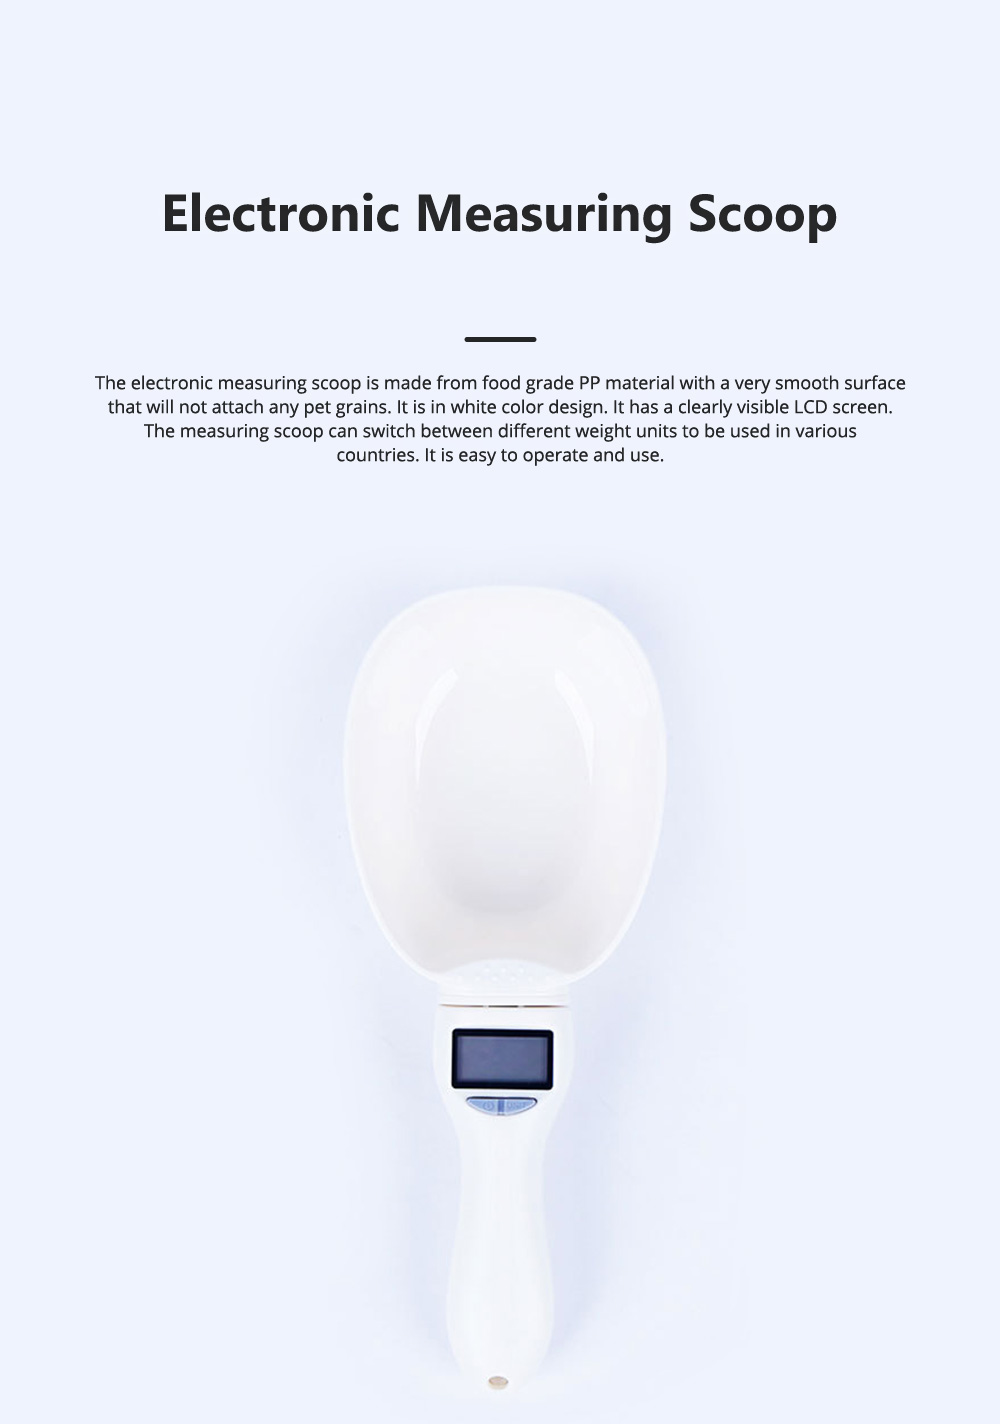 Electronic Measuring Scoop Food Grade PP Measuring Spoon for Dog Cat Rabbit Hamster Necessary Pet Product Cat Food Electronic Scale 0